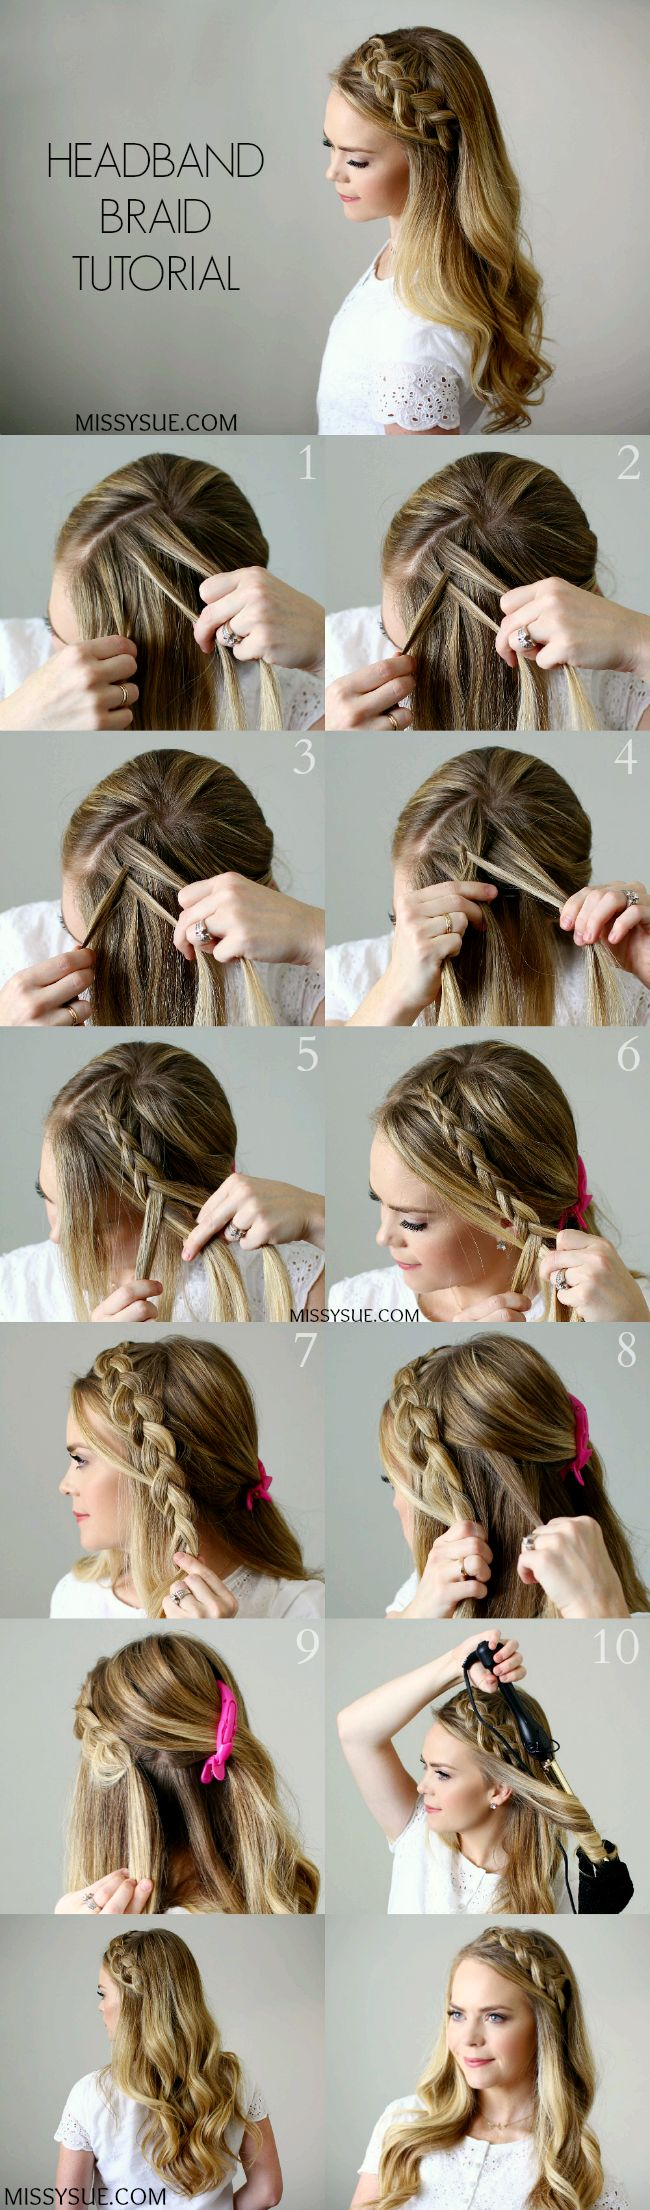 dutch-headband-braid-tutorial-2